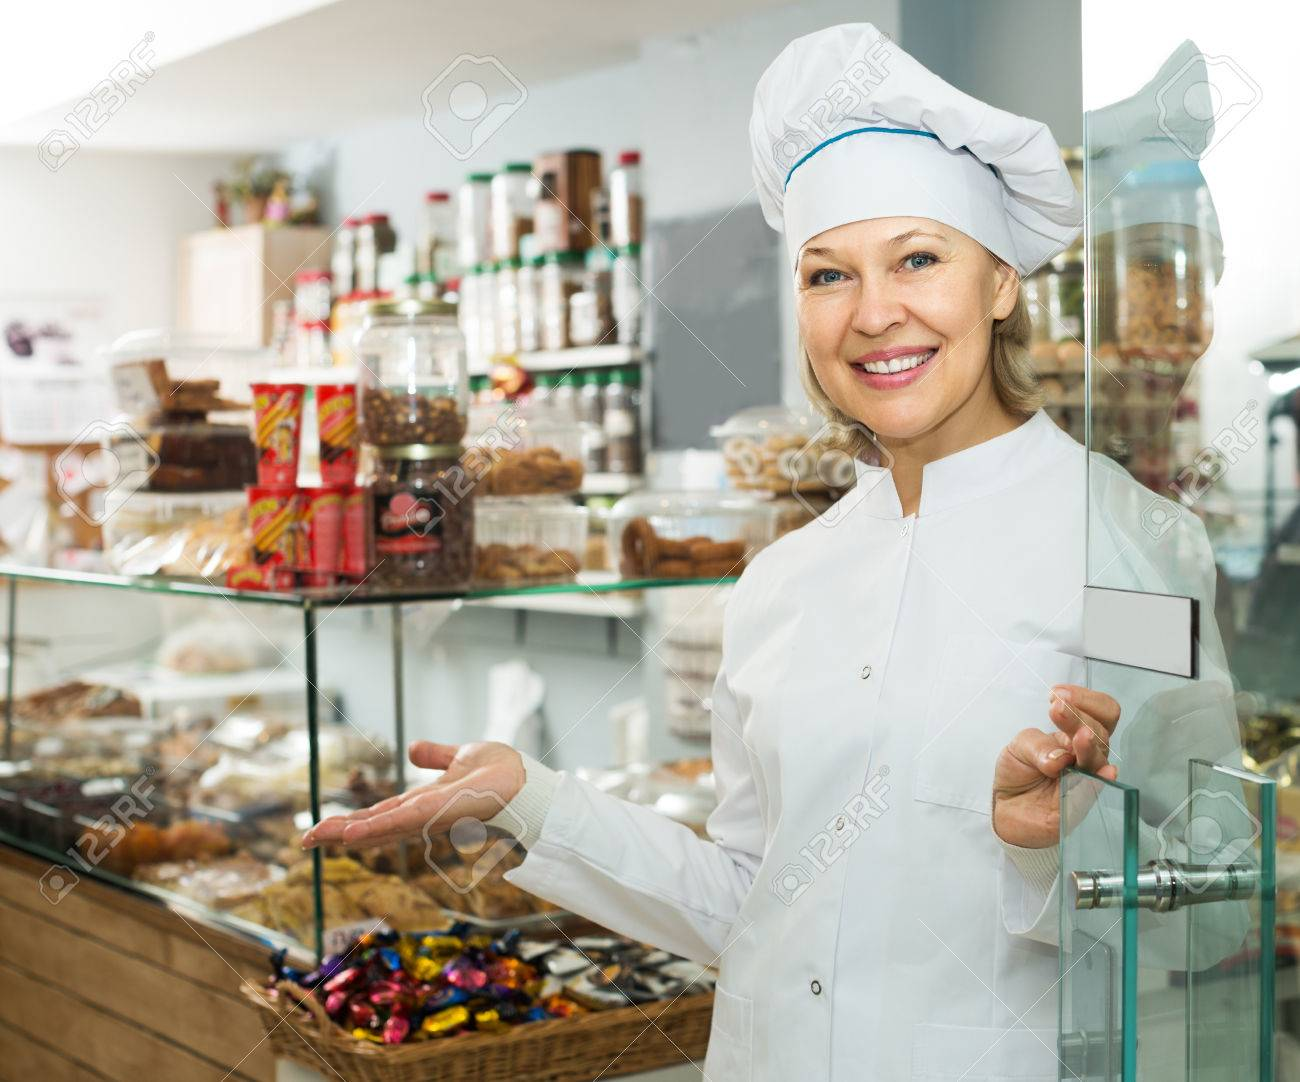 Happy mature chef with hat meeting customers at door in pastry shop Stock Photo - 53595898  sc 1 st  123RF.com & Happy Mature Chef With Hat Meeting Customers At Door In Pastry ...